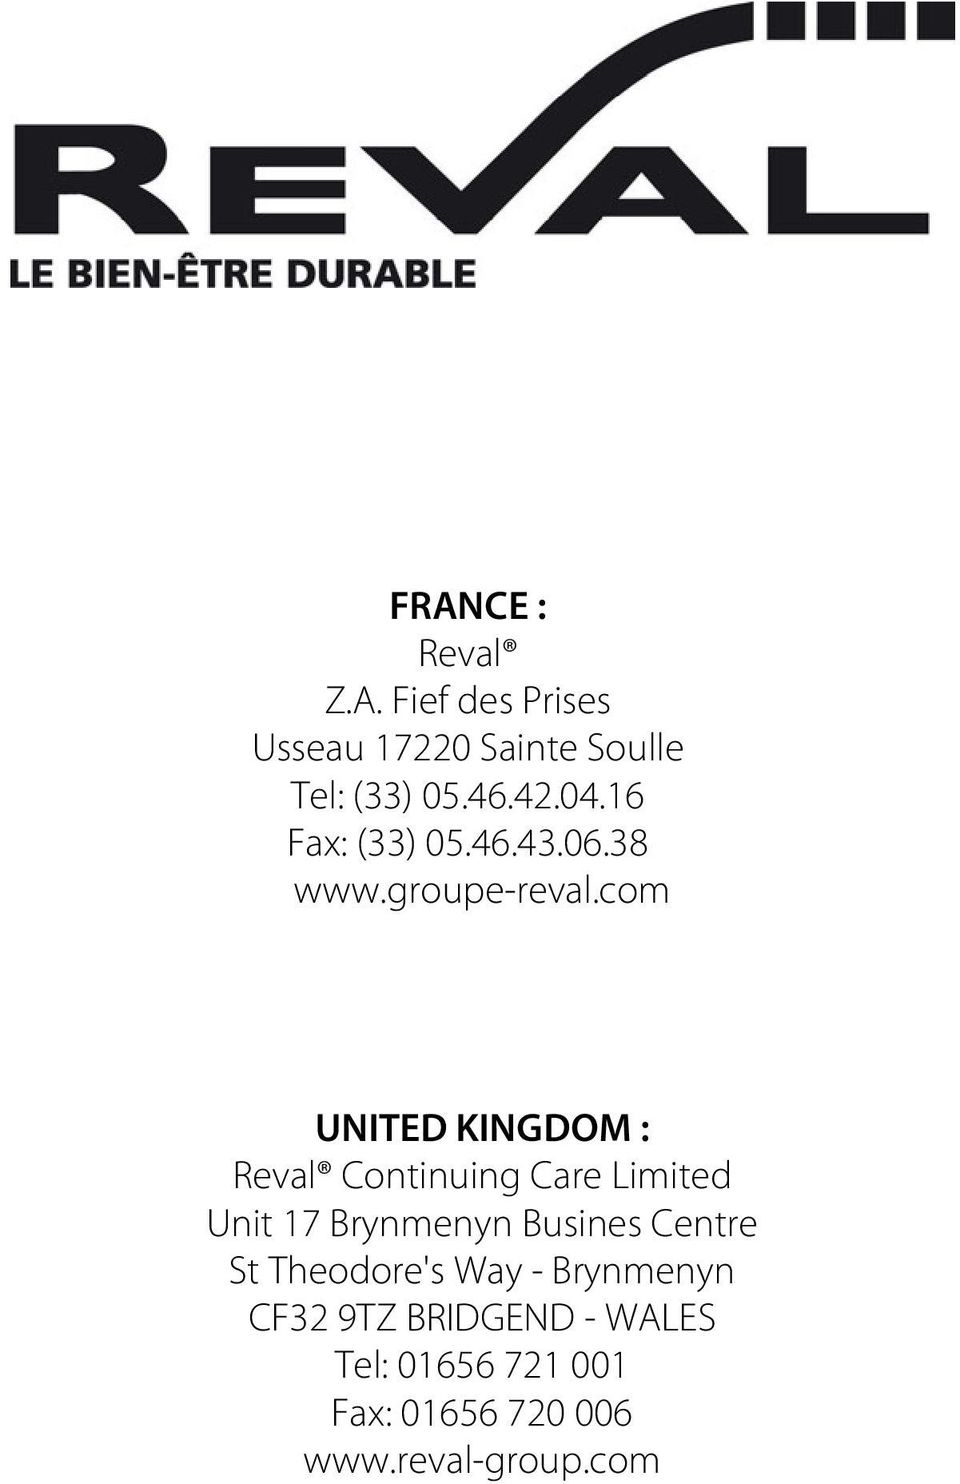 com UNITED KINGDOM : Reval Continuing Care Limited Unit 17 Brynmenyn Busines